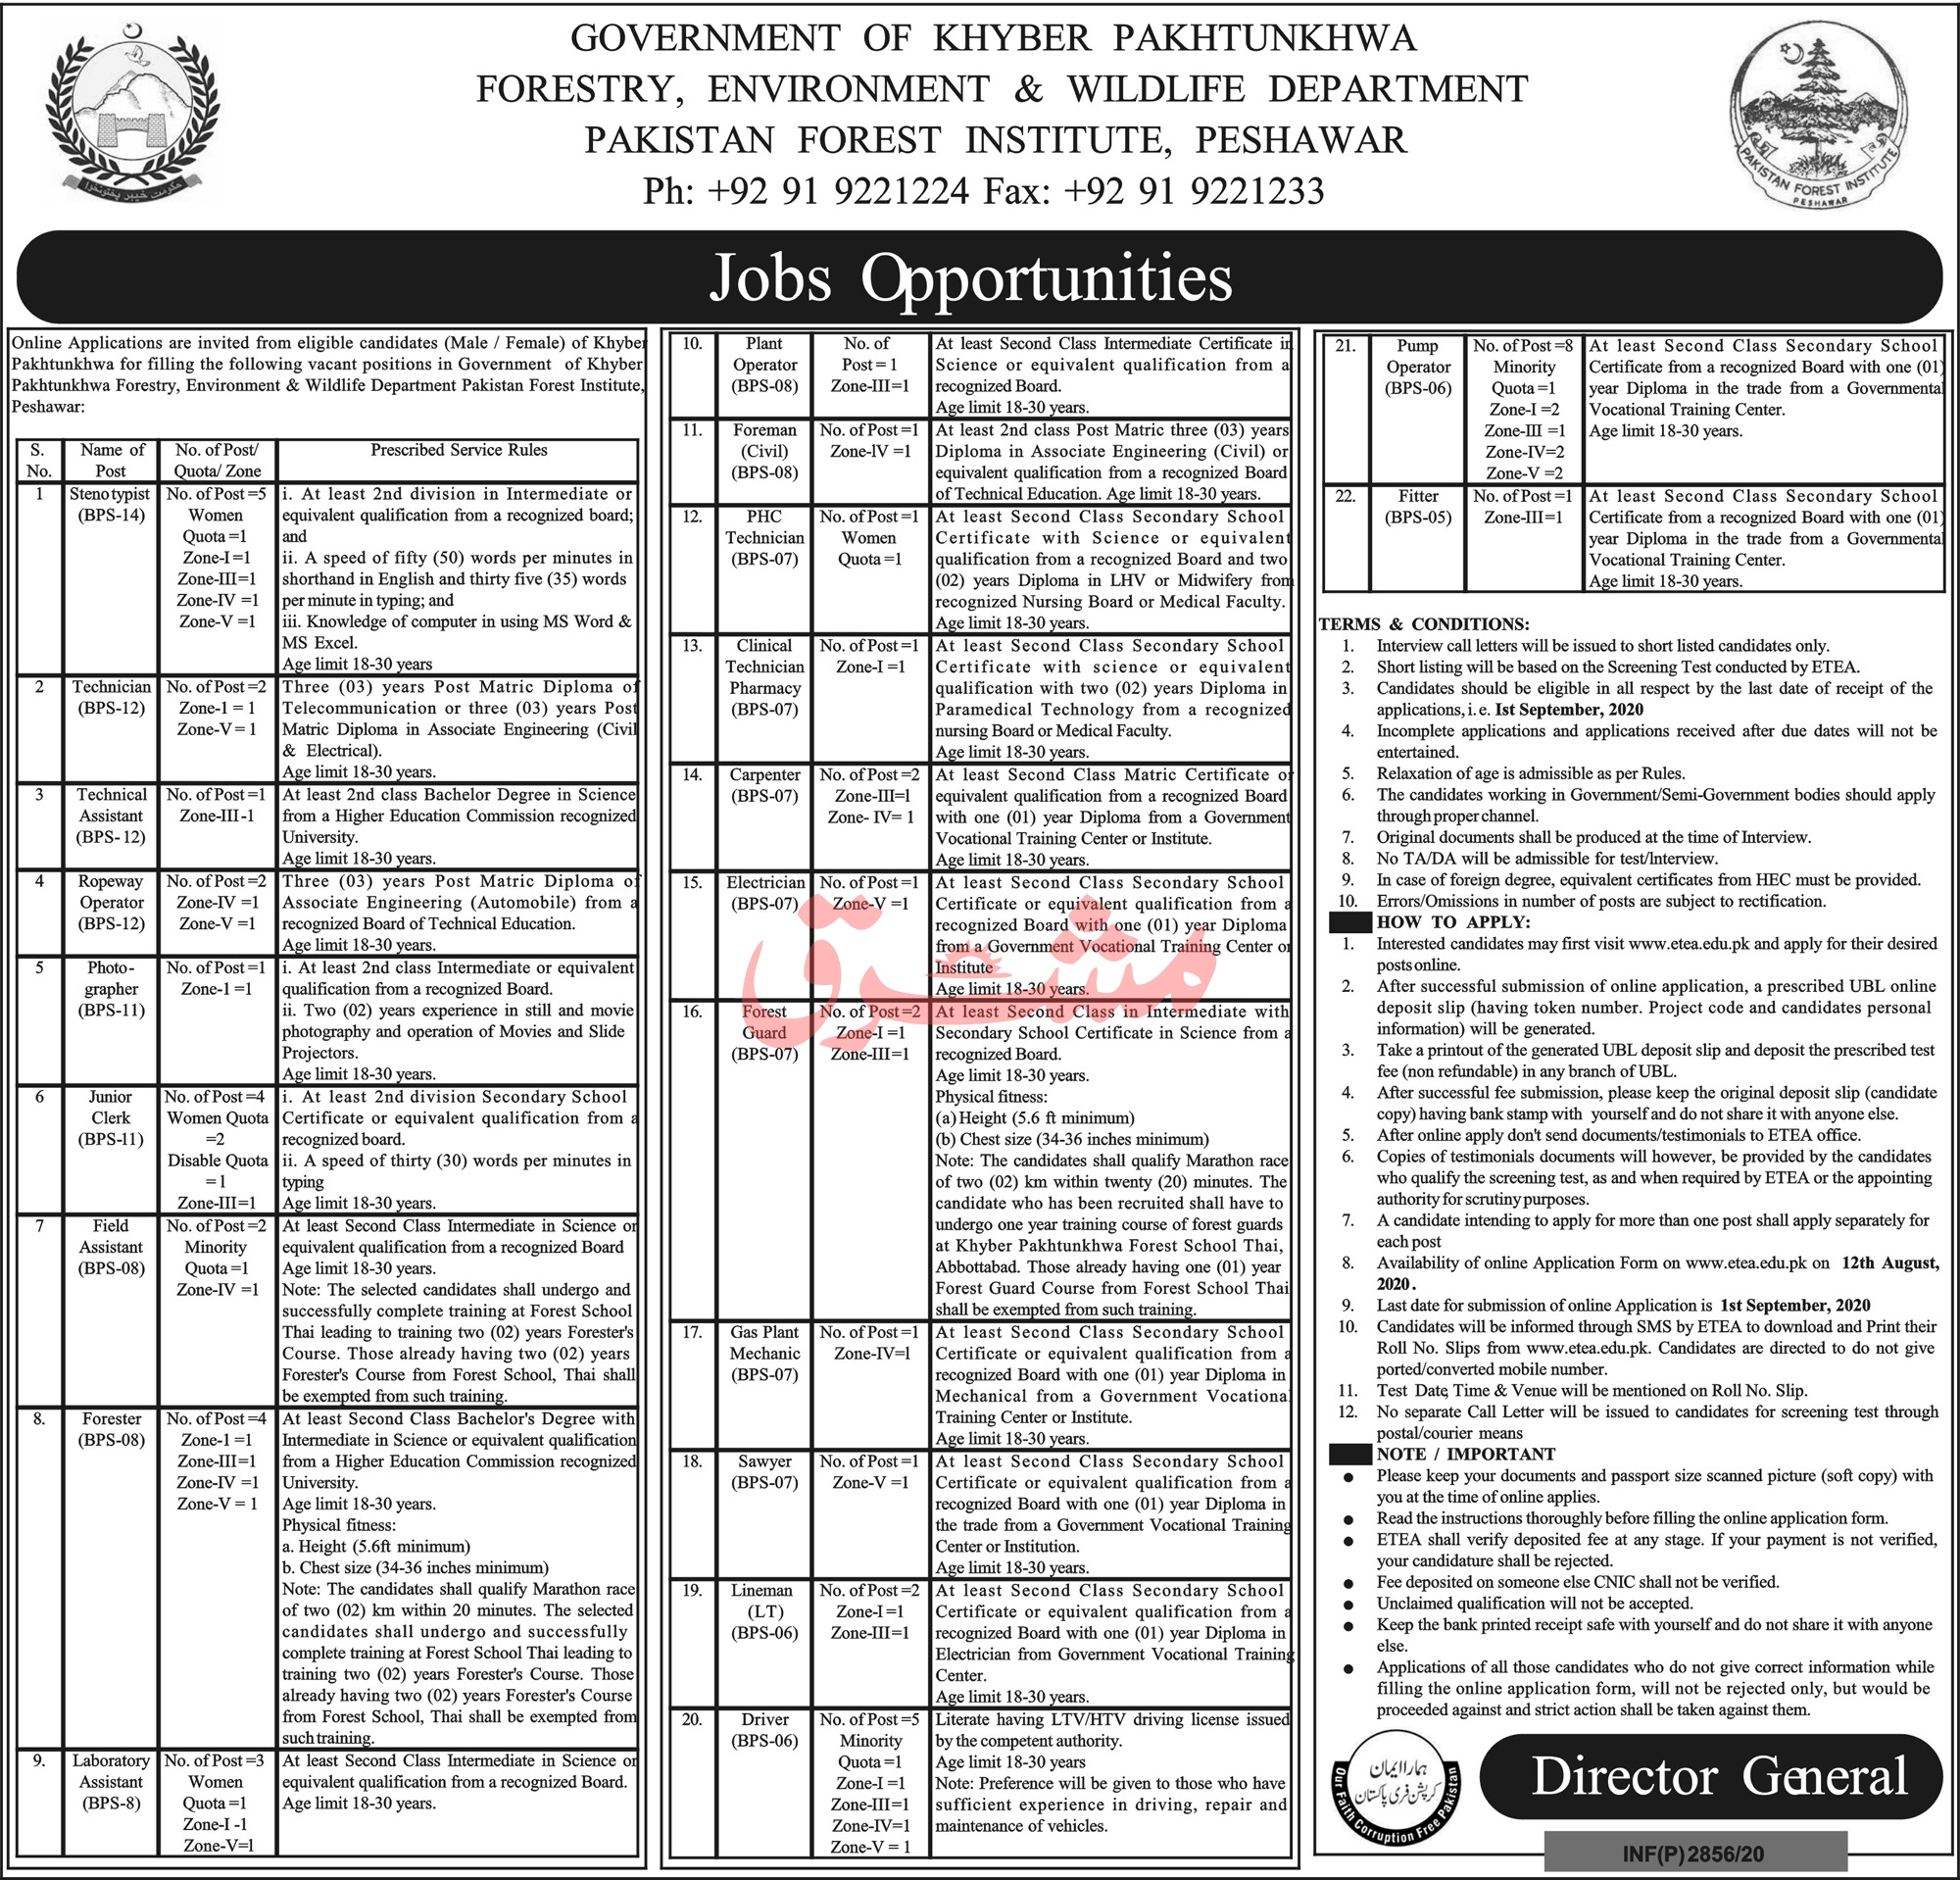 Government of Khyber Pakhtunkhwa Forestry, Environment & Wildlife Department Jobs August 2020